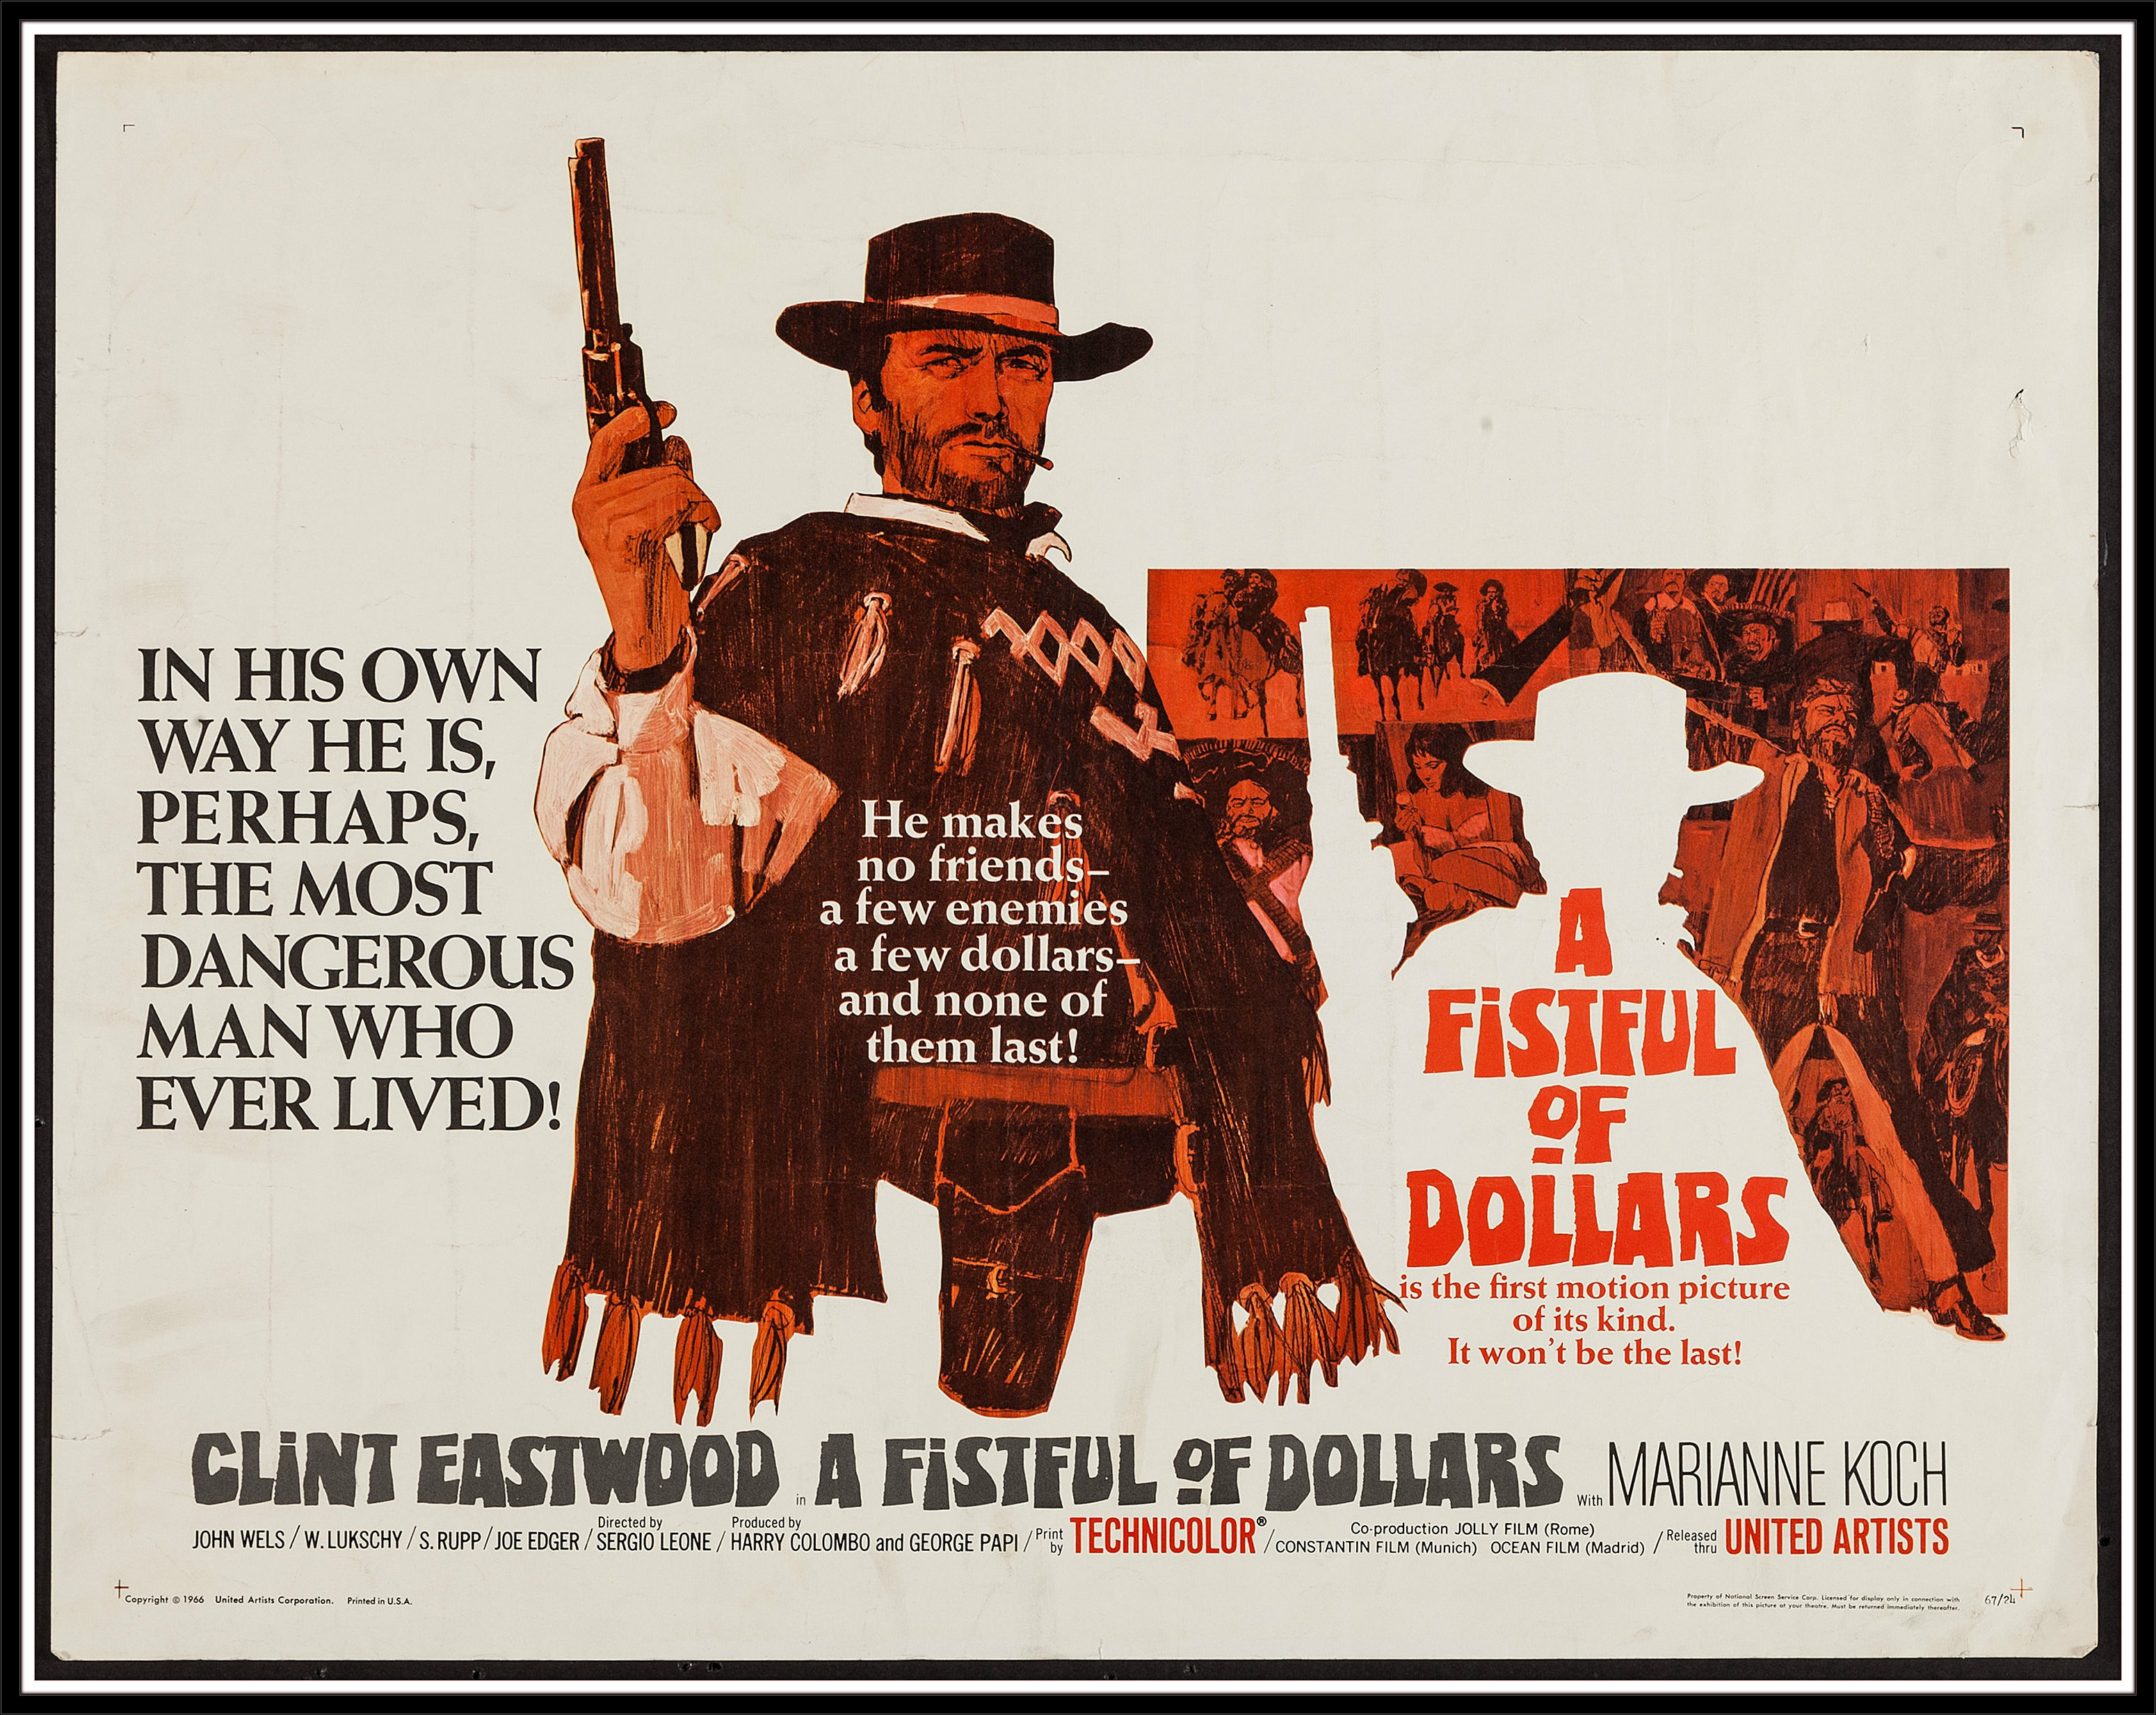 Clint Eastwood Cowboy Wallpaper: A FISTFUL OF DOLLARS Western Clint Eastwood Poster F